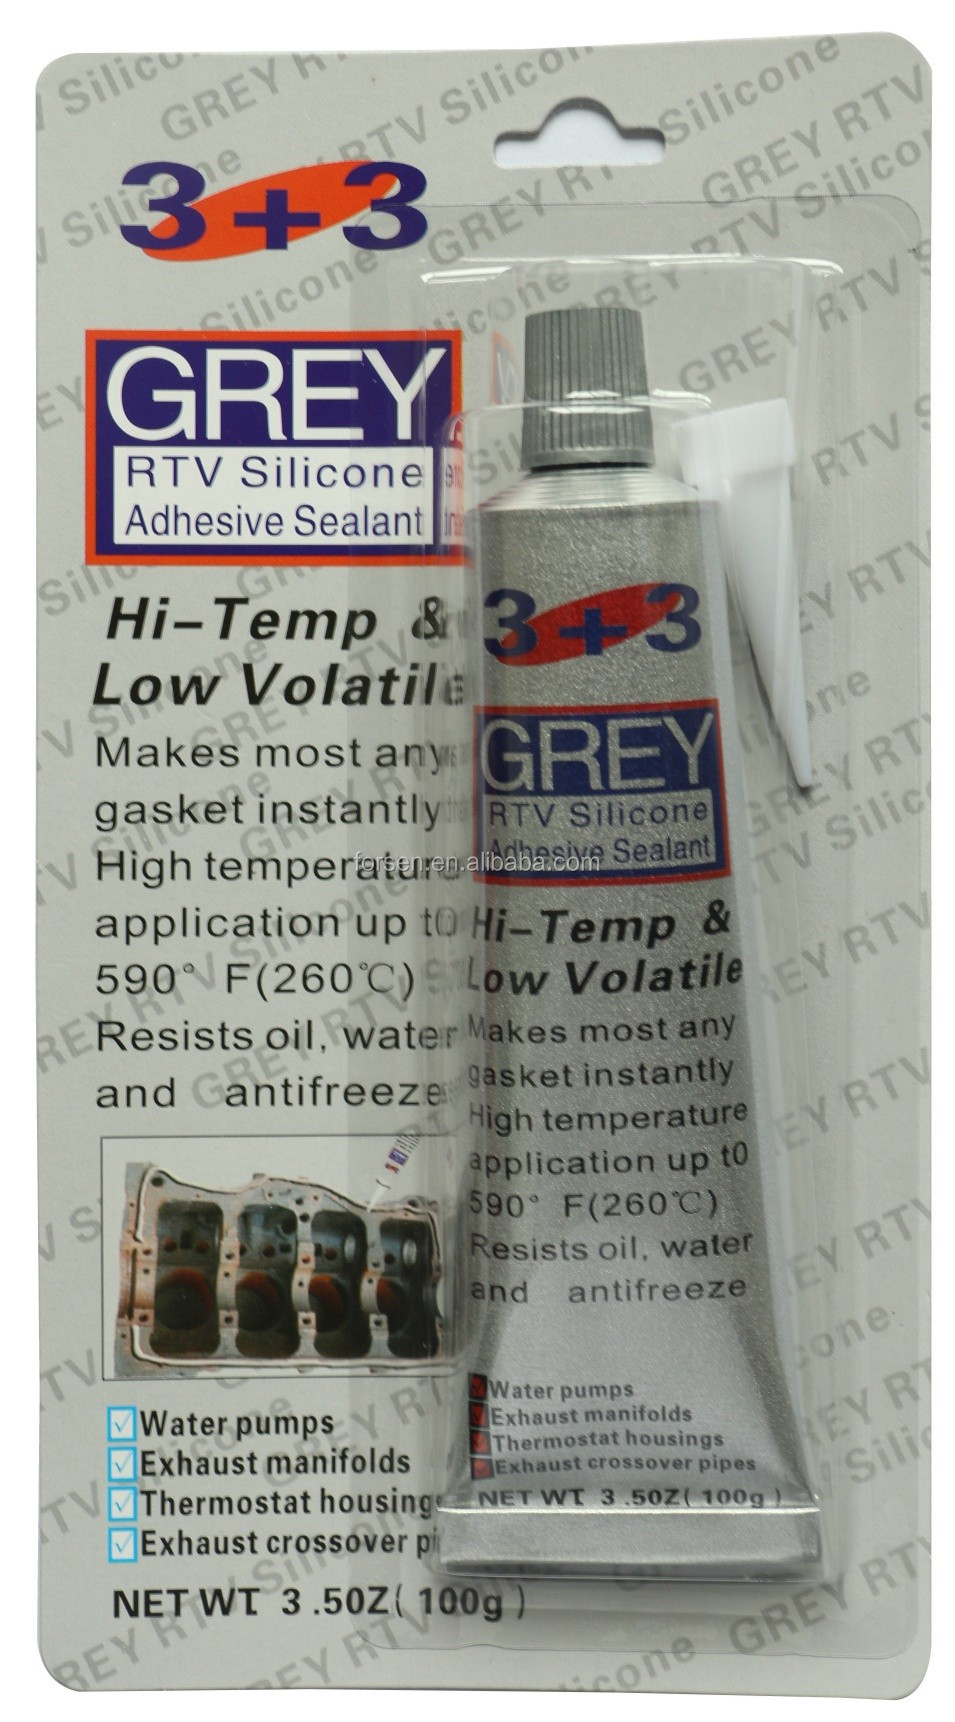 3+3 Gray RTV Silicone Gasket Maker Most Popular Adhesives